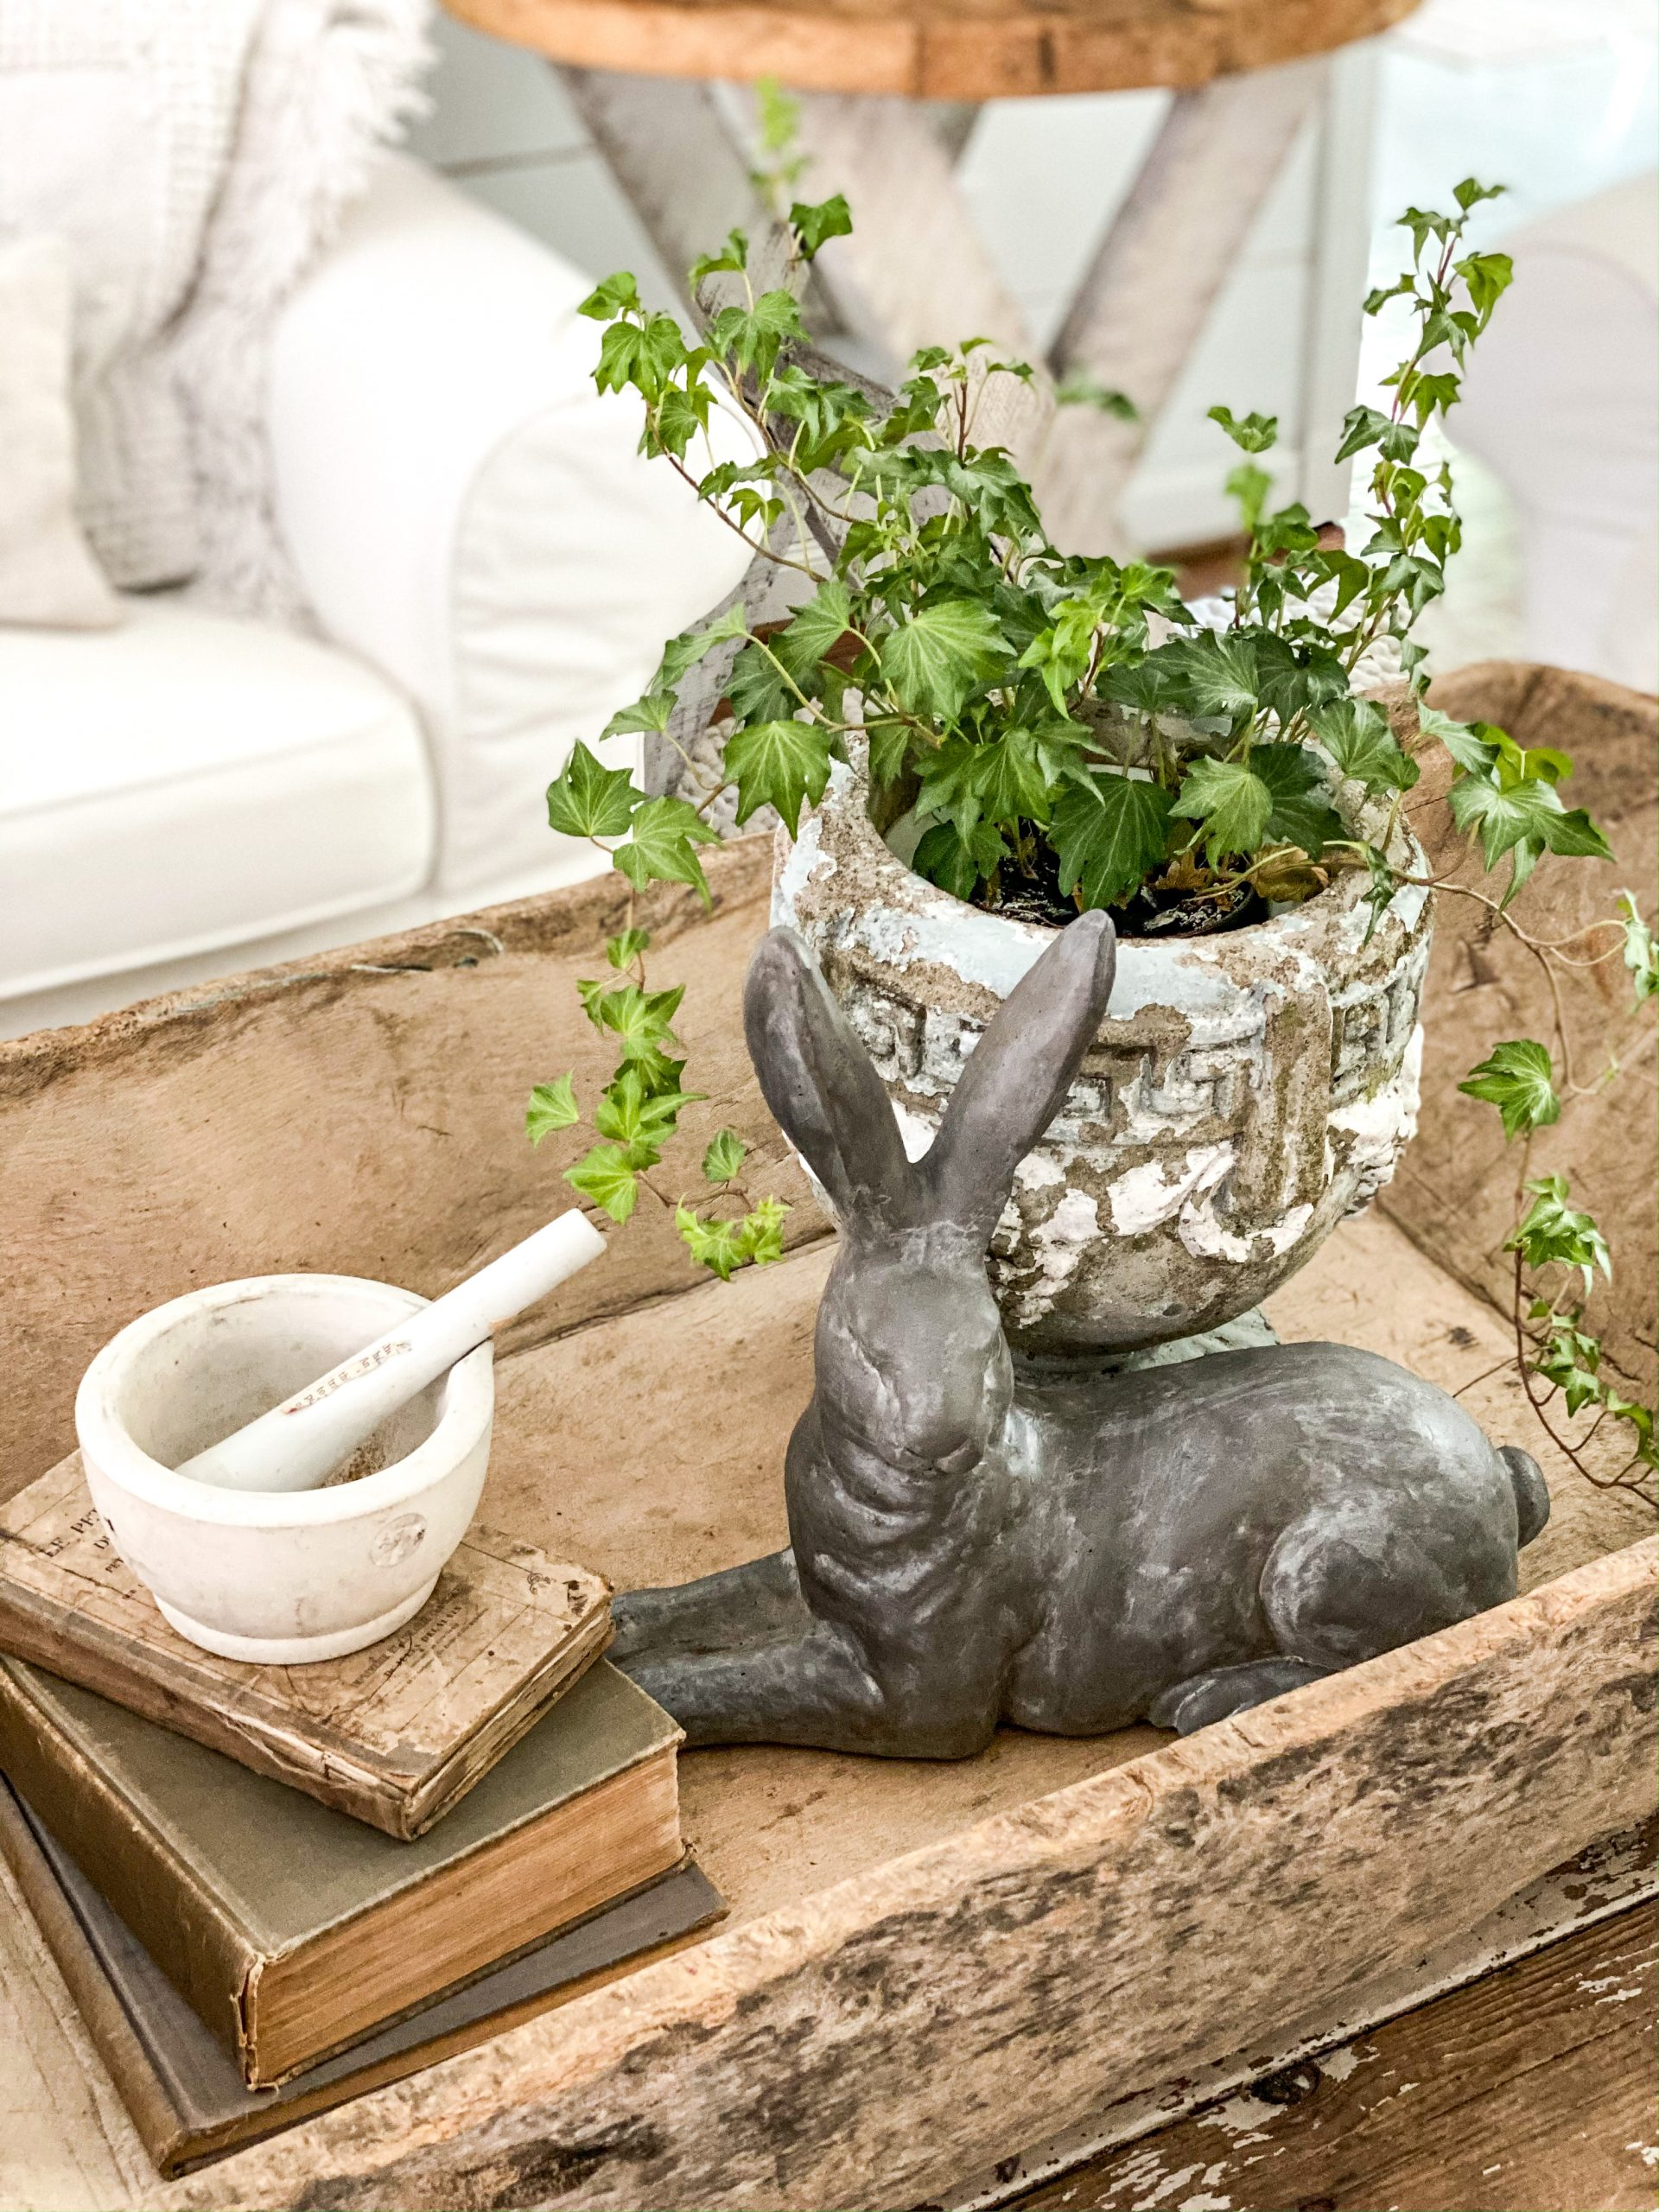 Decorating for Easter with Neutrals